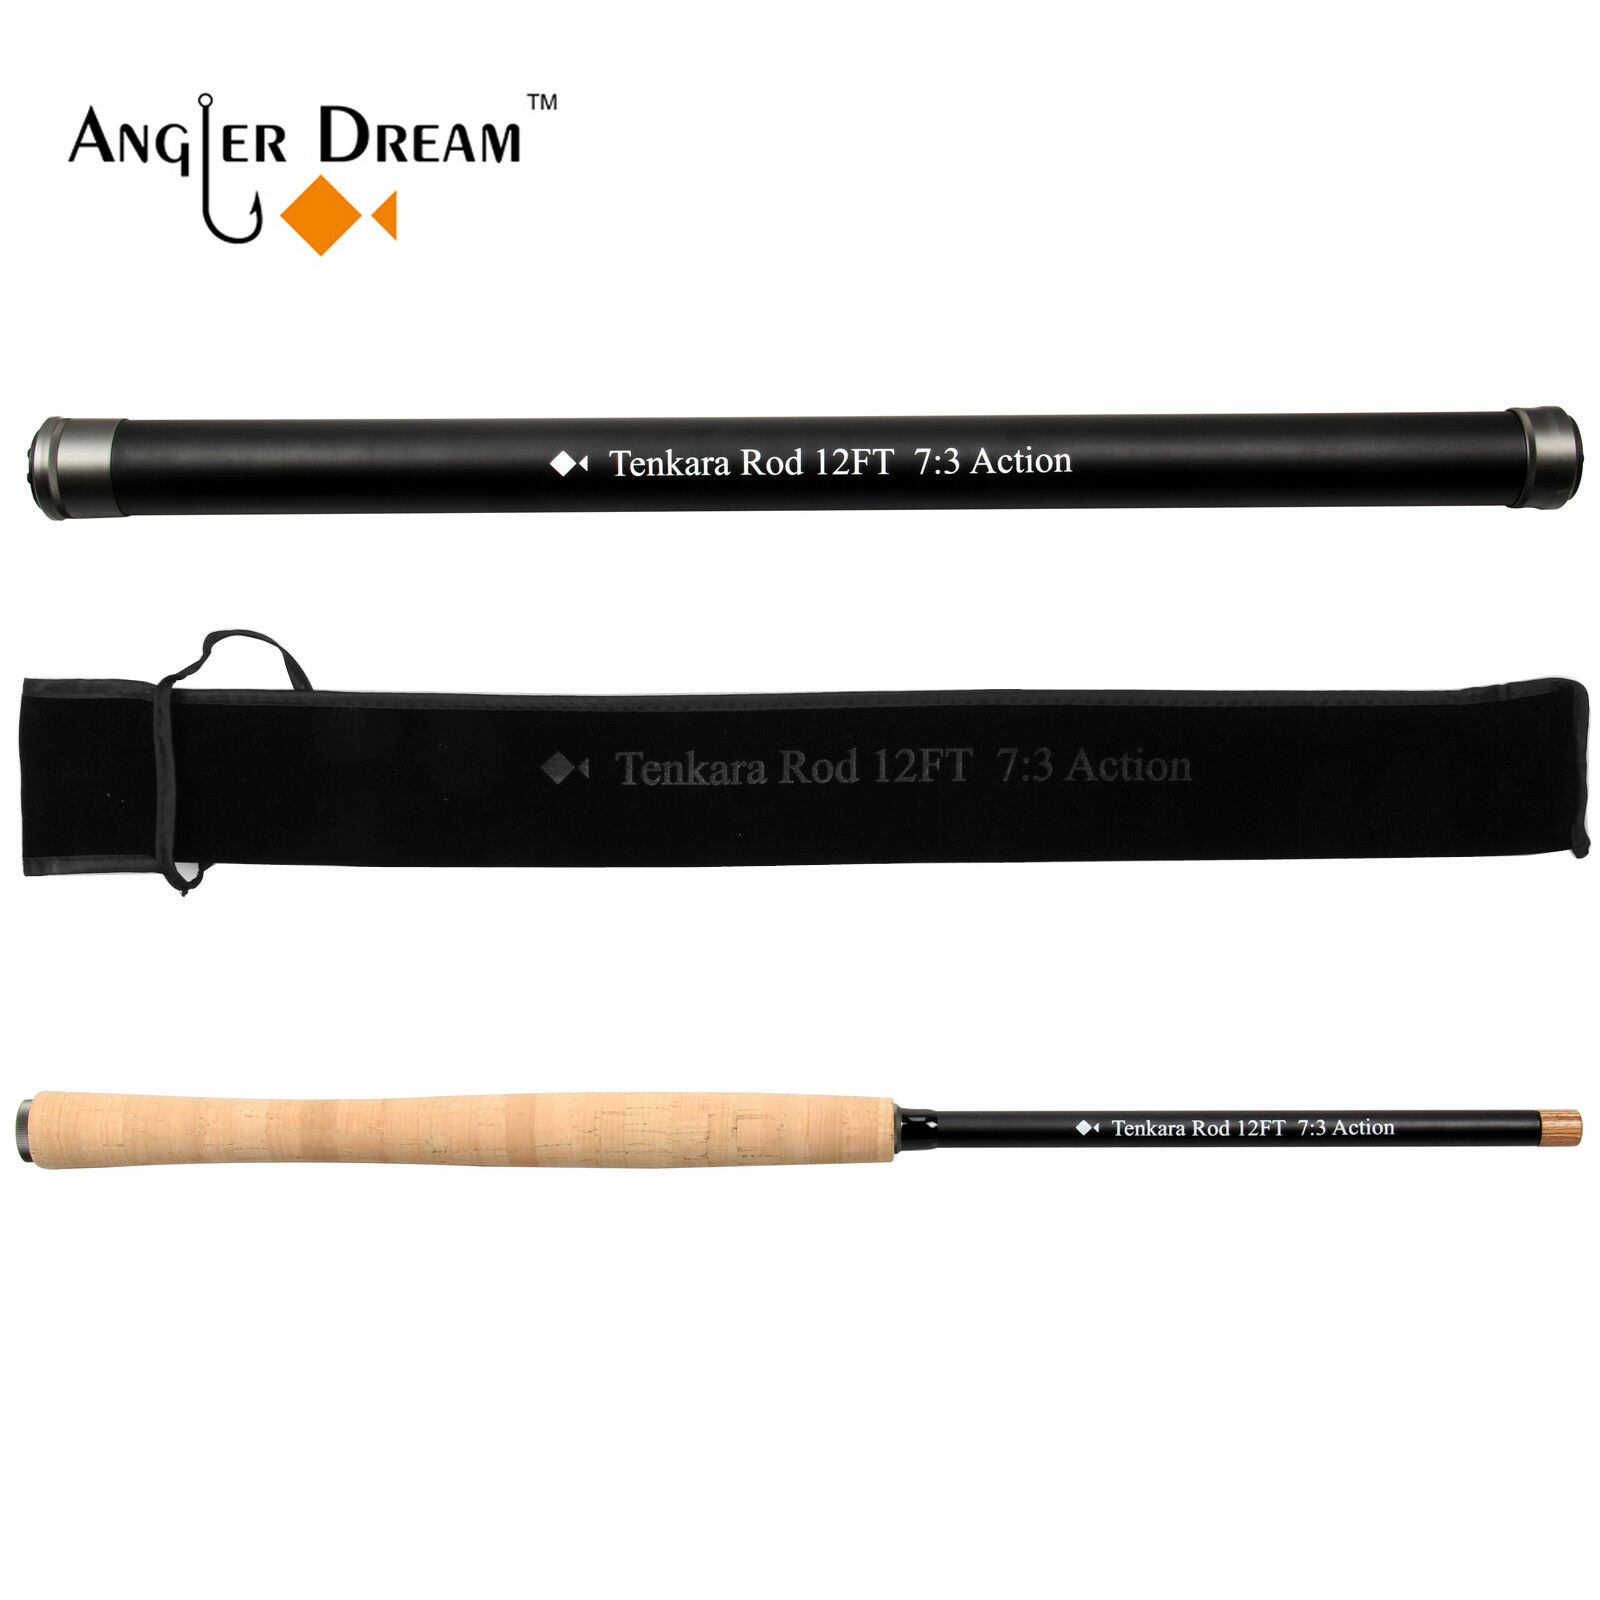 12 13FT Tenkara Rod Carbon Fiber (IM8) 7  3 Action Telescopic Fly Fishing Rods  will make you satisfied